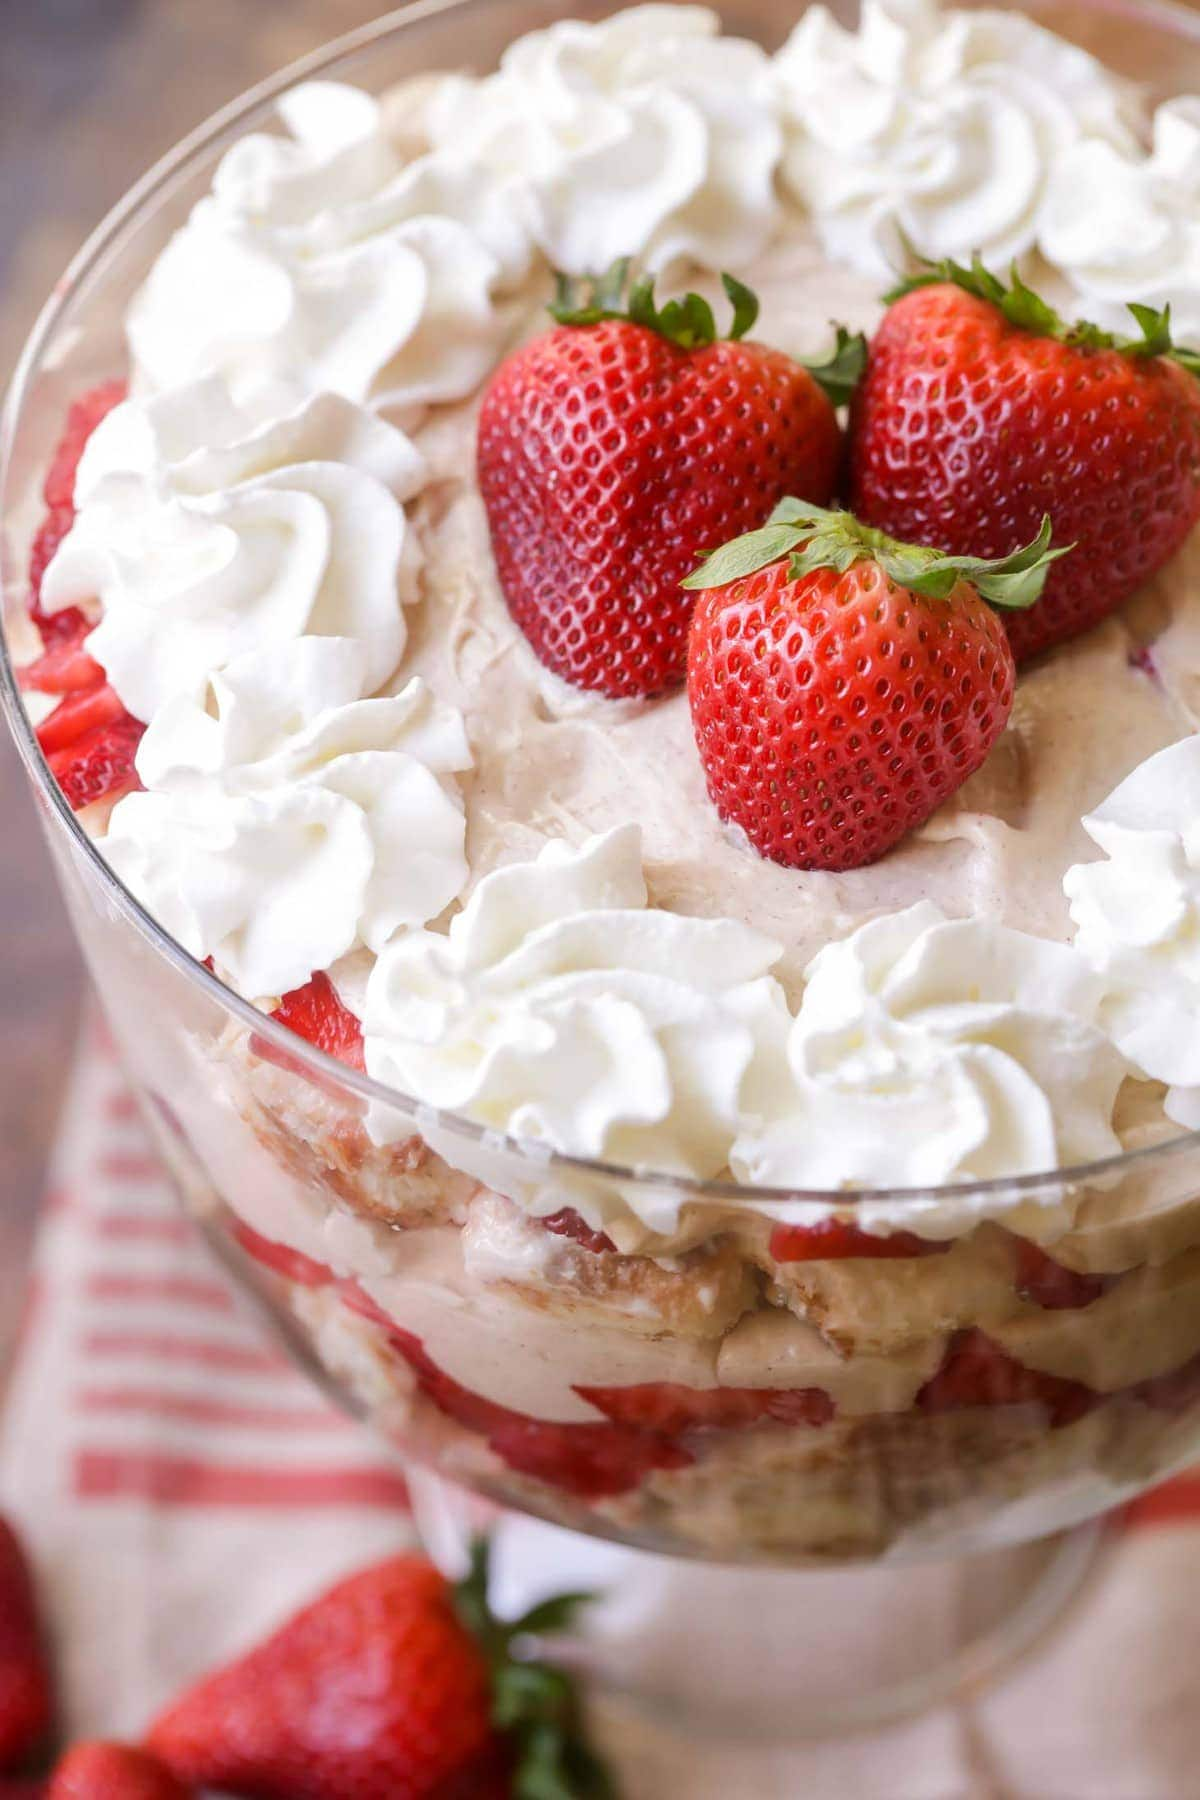 Strawberry Coconut Tres Leches Trifle - a delicious and cool layered dessert with sweetened condensed milk, coconut milk, whipped cream pudding, cinnamon and strawberries.